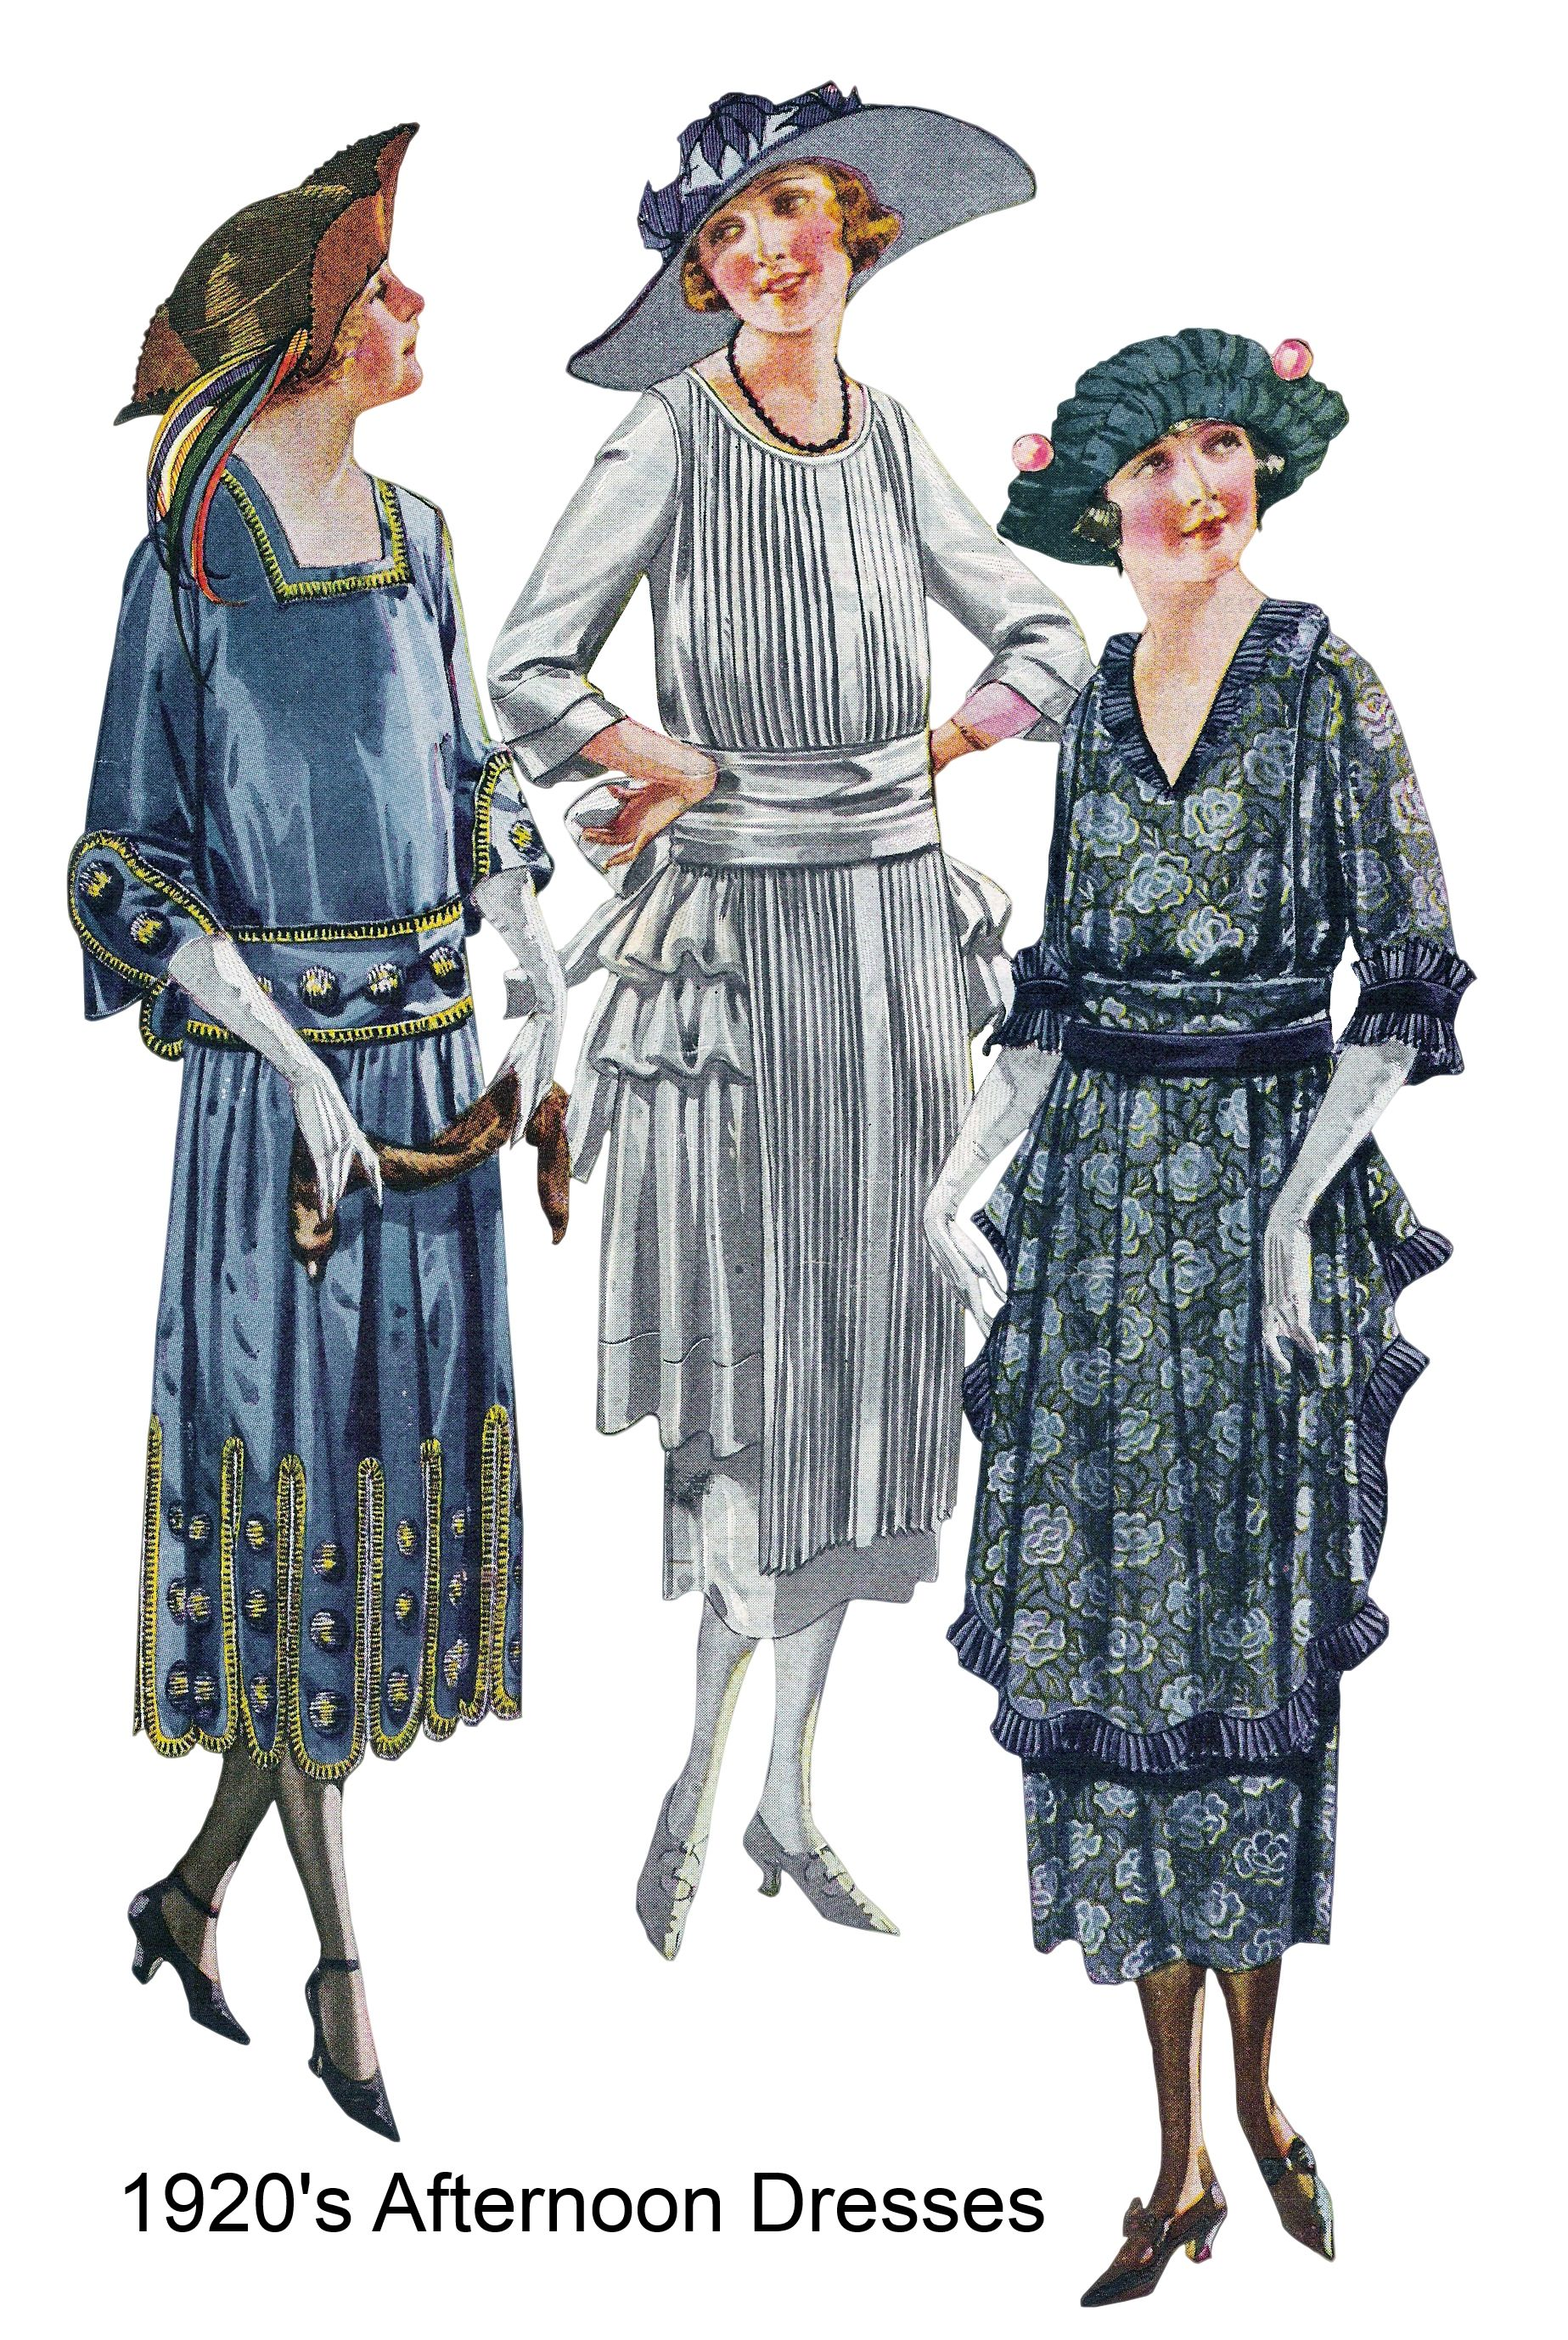 What Did Women Wear in the 1920s? 20s Clothing Trends